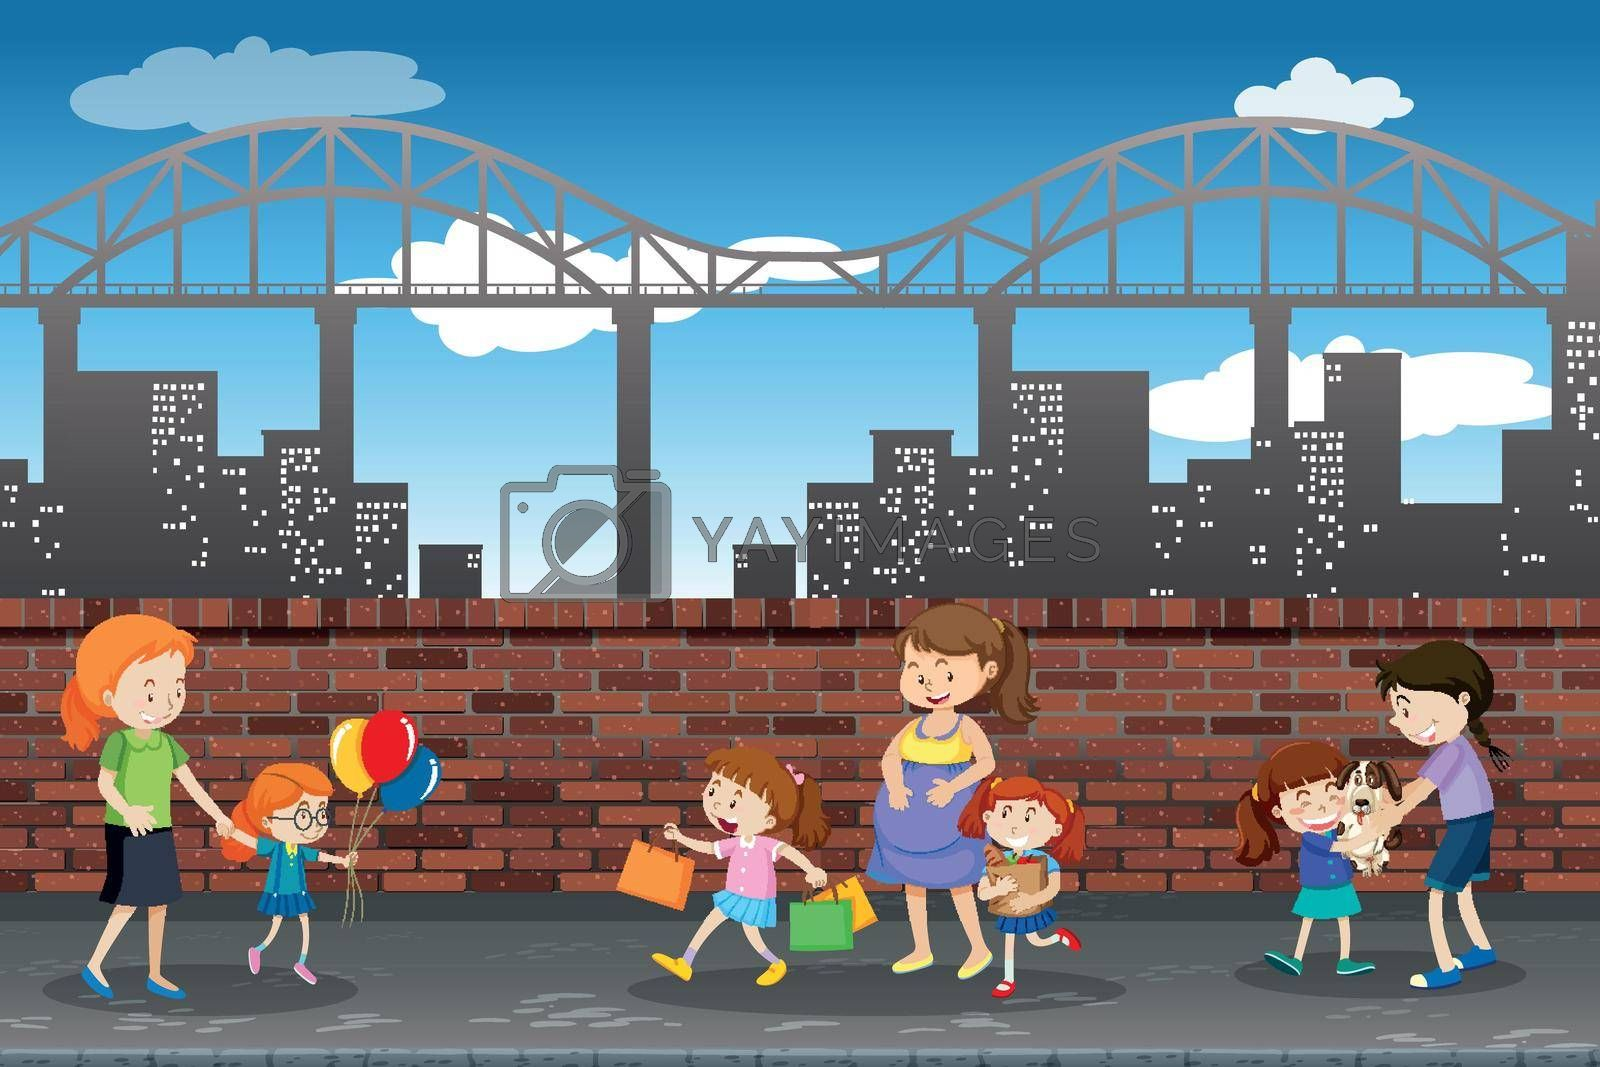 Royalty free image of People in the town by iimages